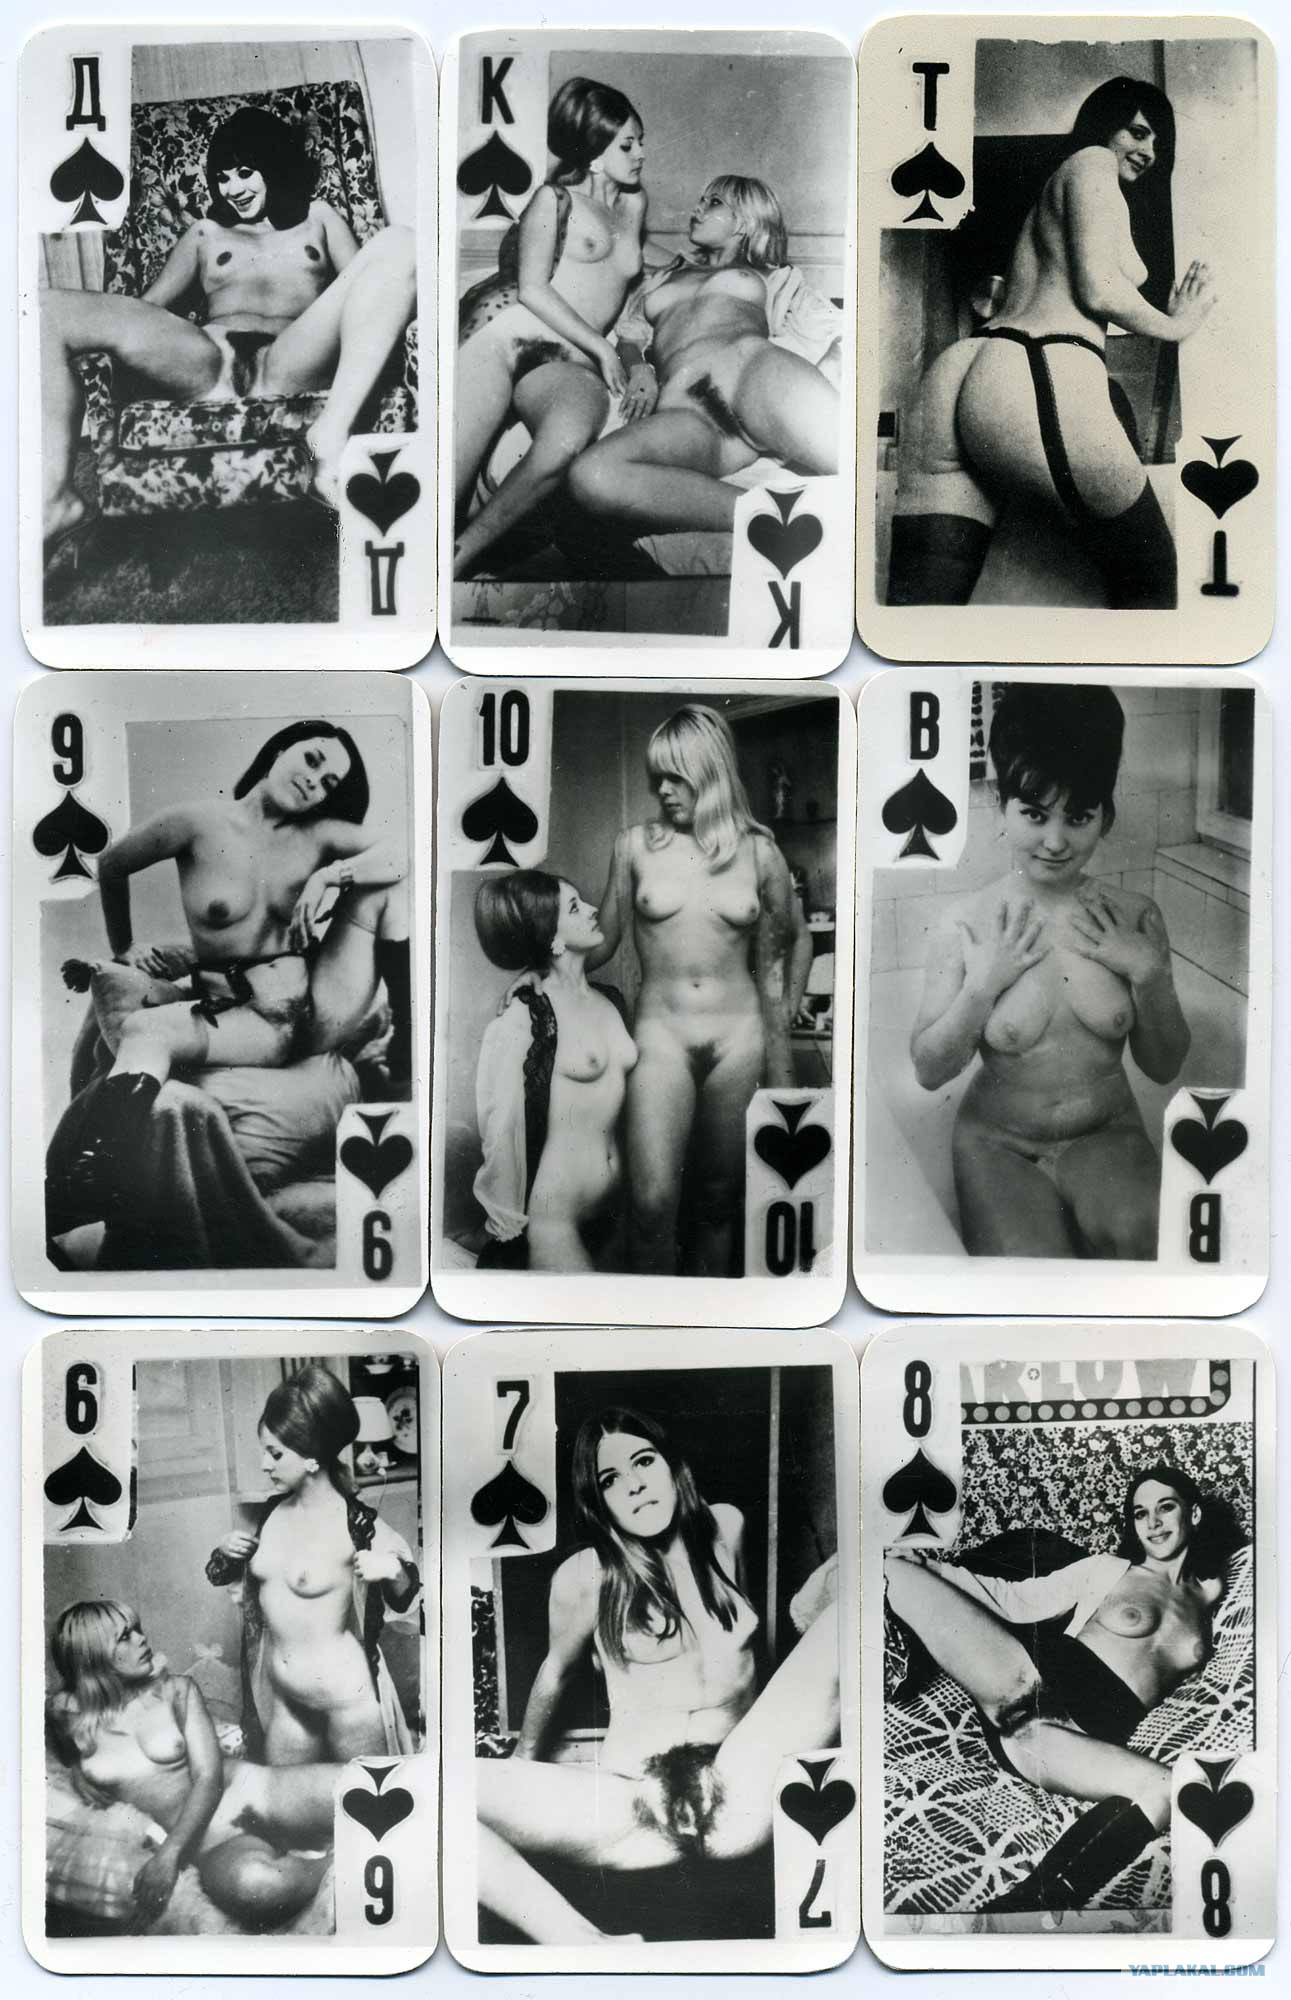 Sex game with cards